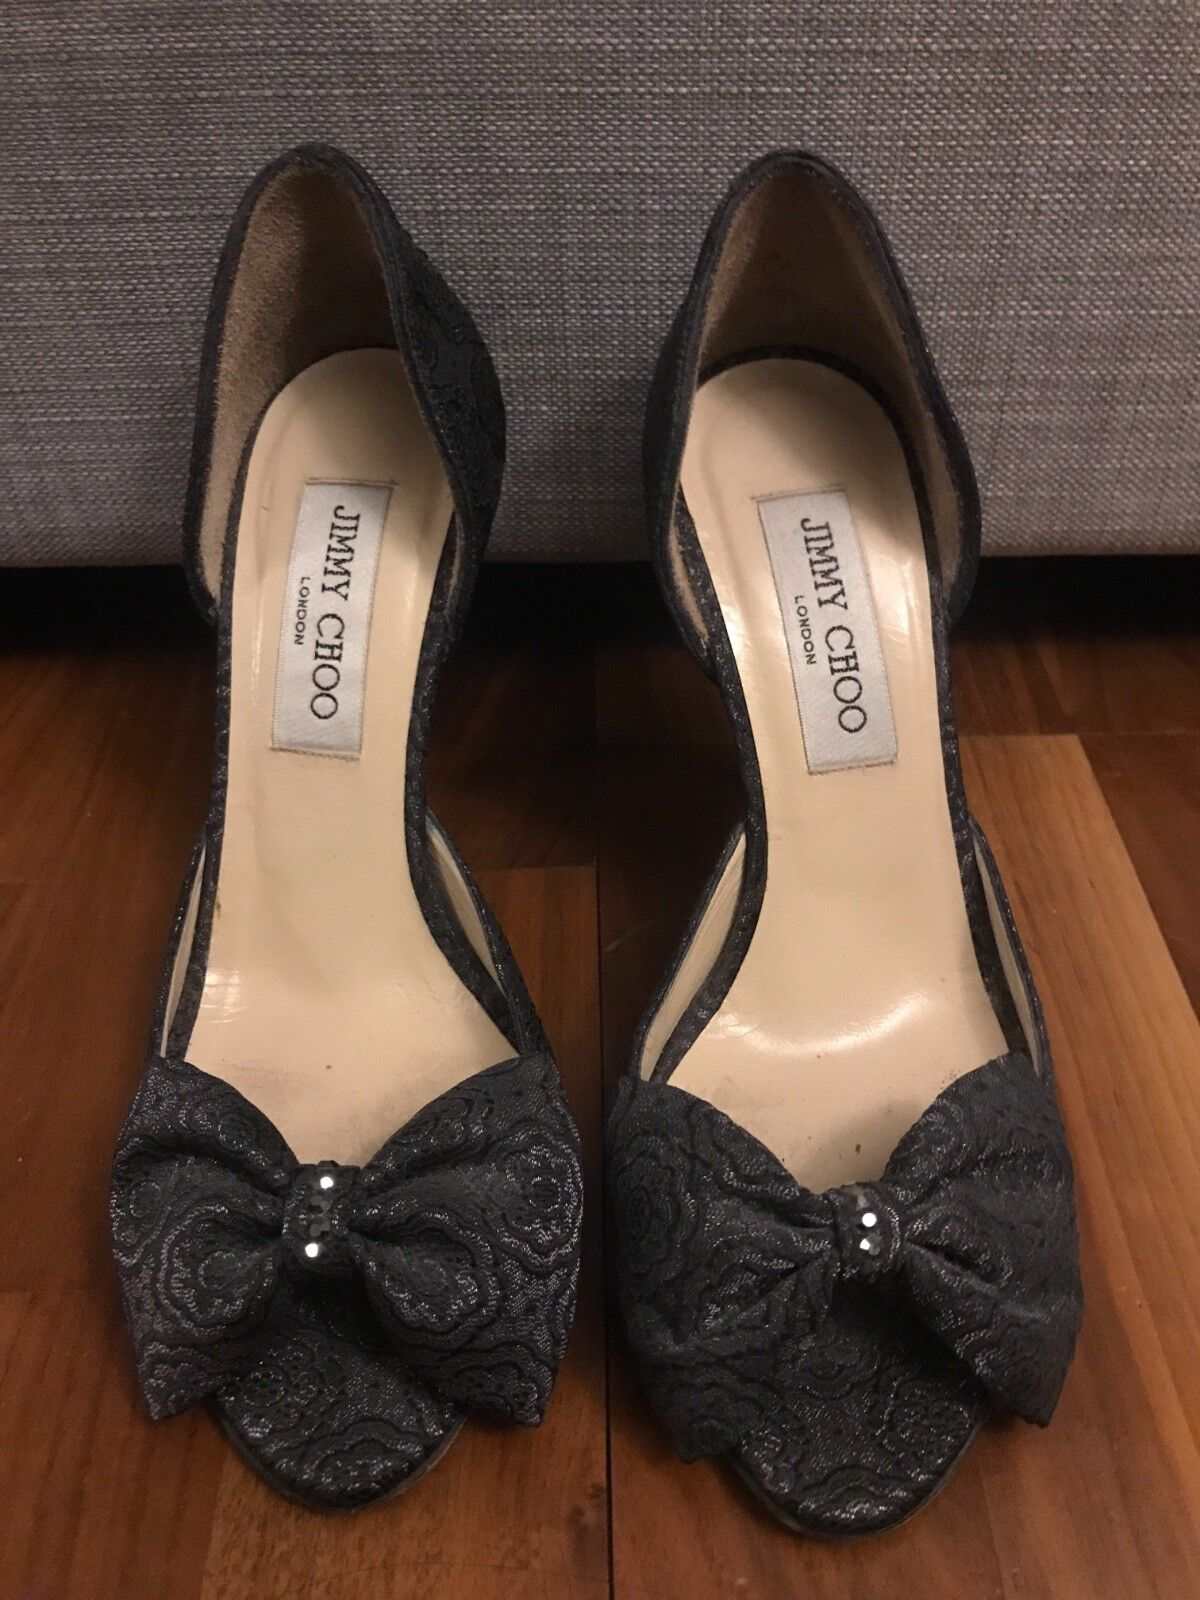 Silver Jimmy Choo shoes with bows, EU 36, UK 3